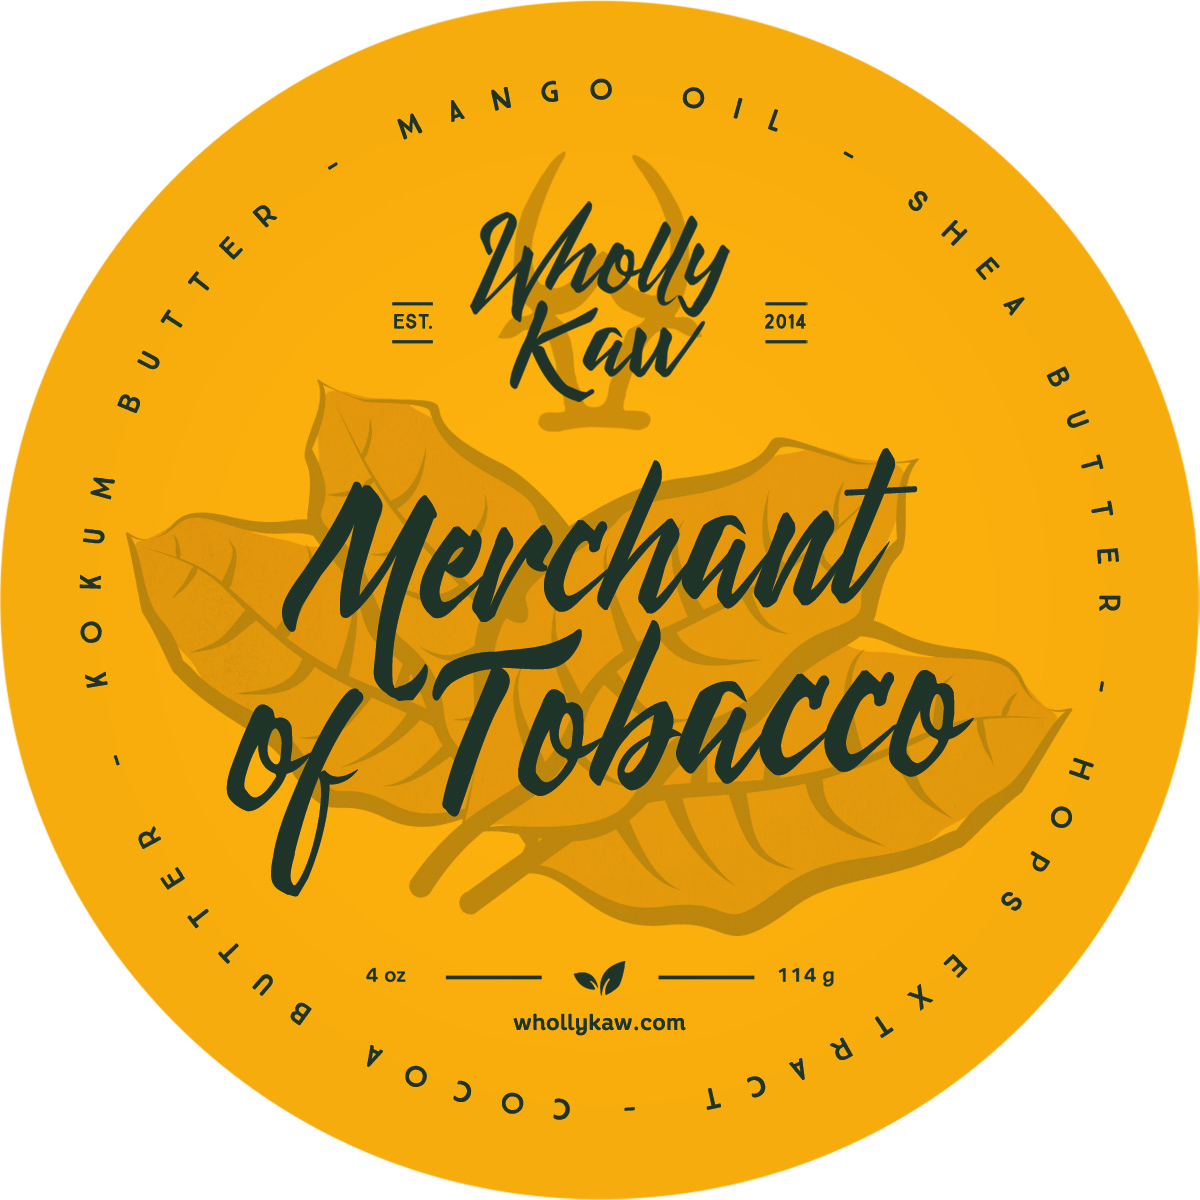 Wholly Kaw - Merchant of Tobacco - Soap (Vegan) image